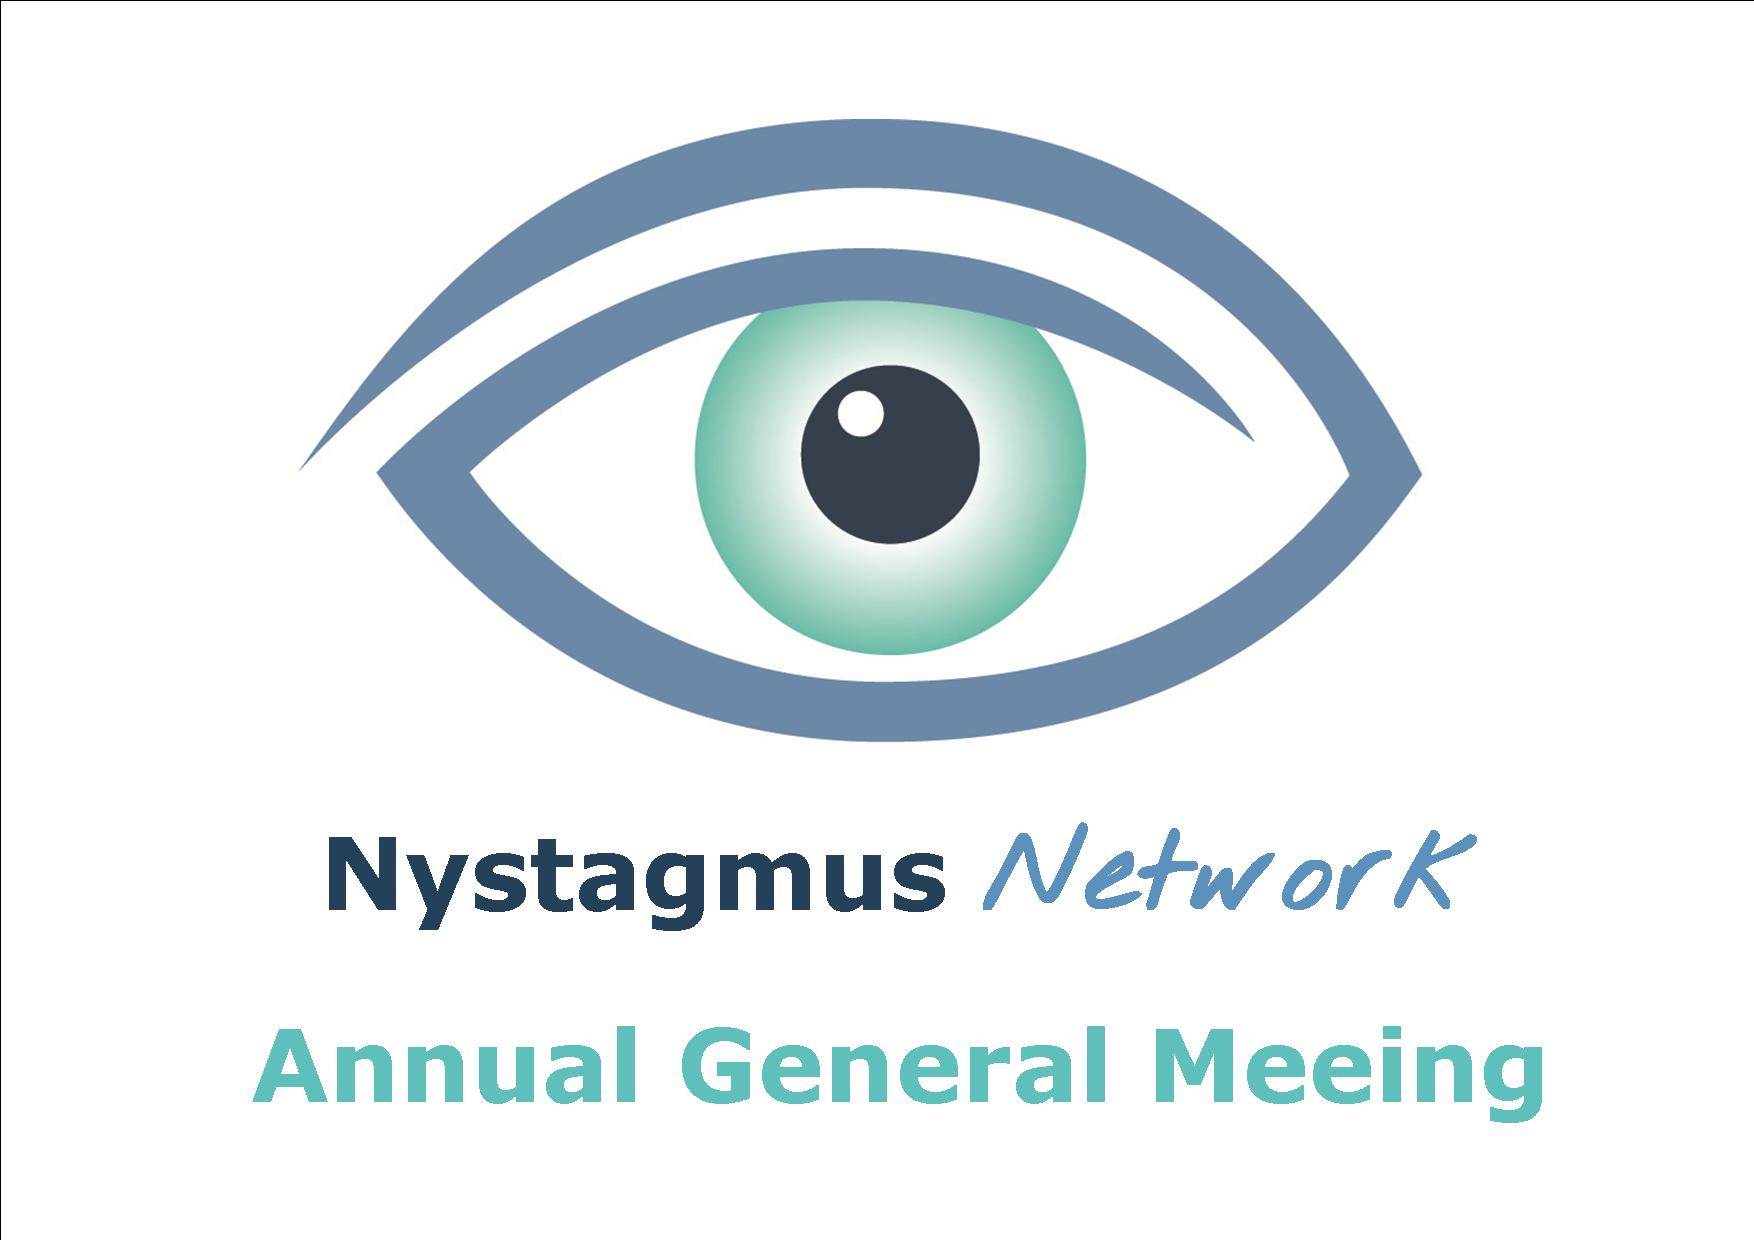 The logo of the Nystagmus Network and the words Annual General Meeting.